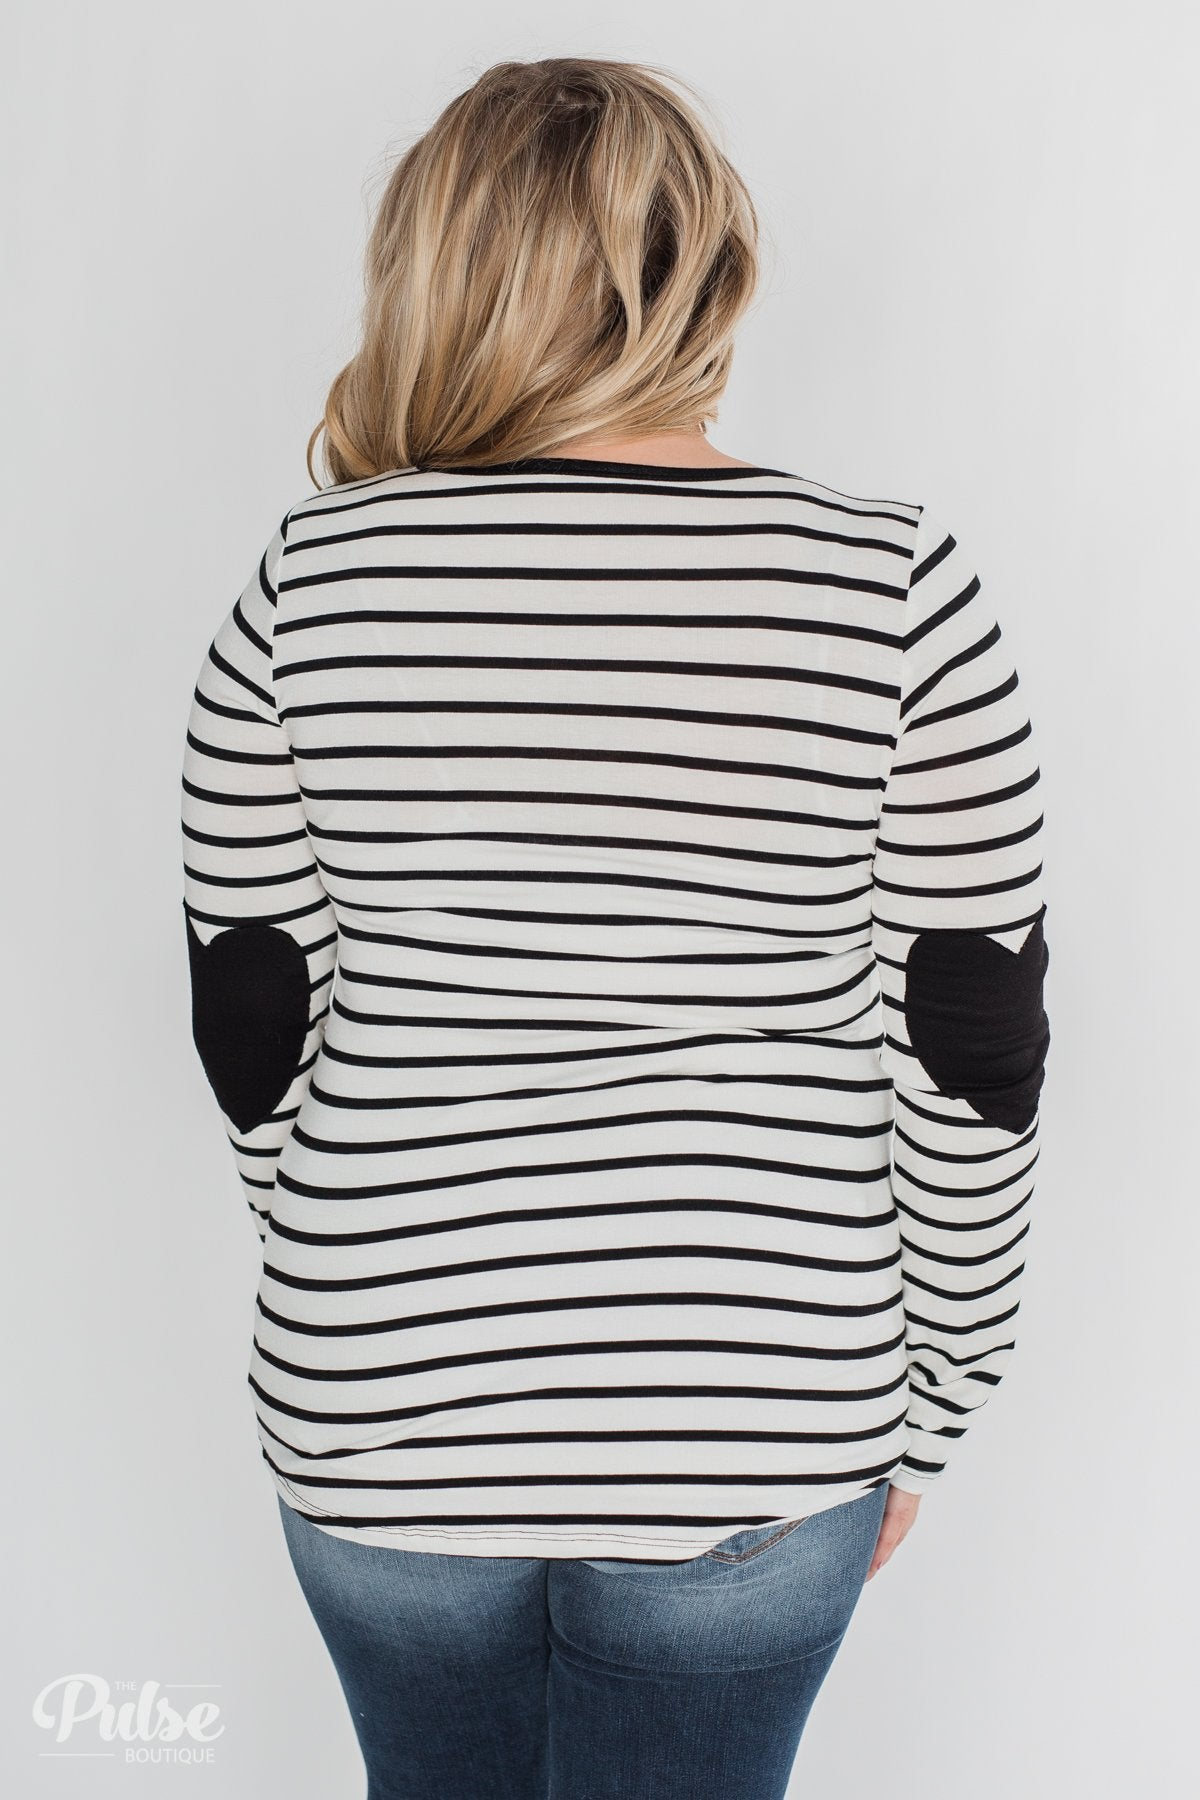 Forever Mine Heart Elbow Patch Top - Black & Ivory